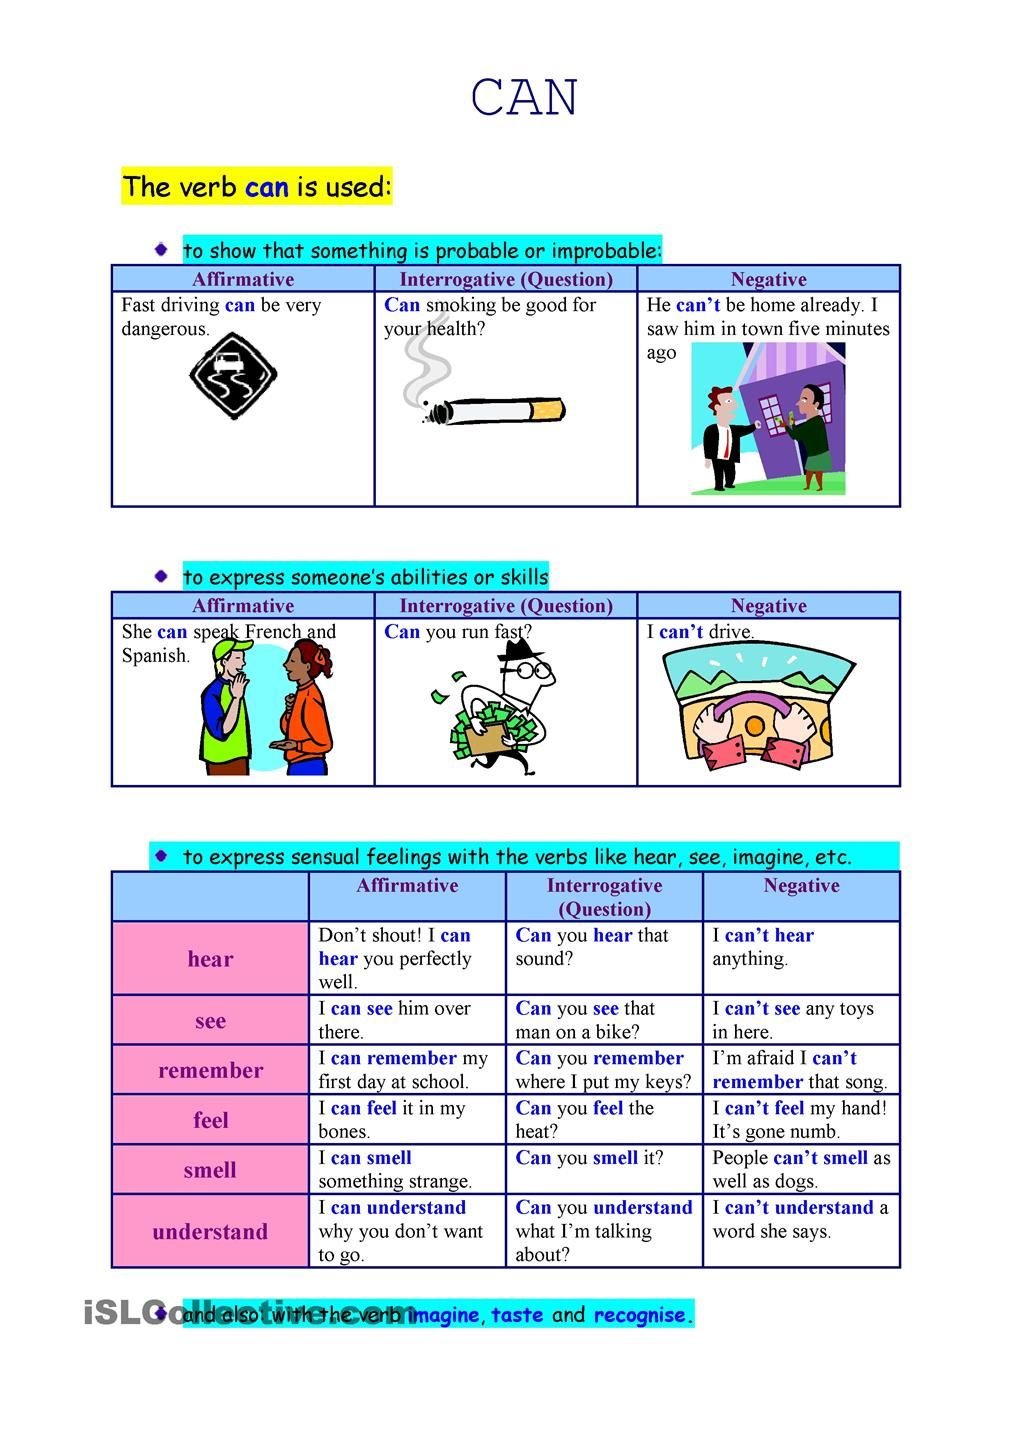 Preposition In Learn In Marathi All Complate: CAN-The Worksheet With The Rules Of The Modal Verb CAN And